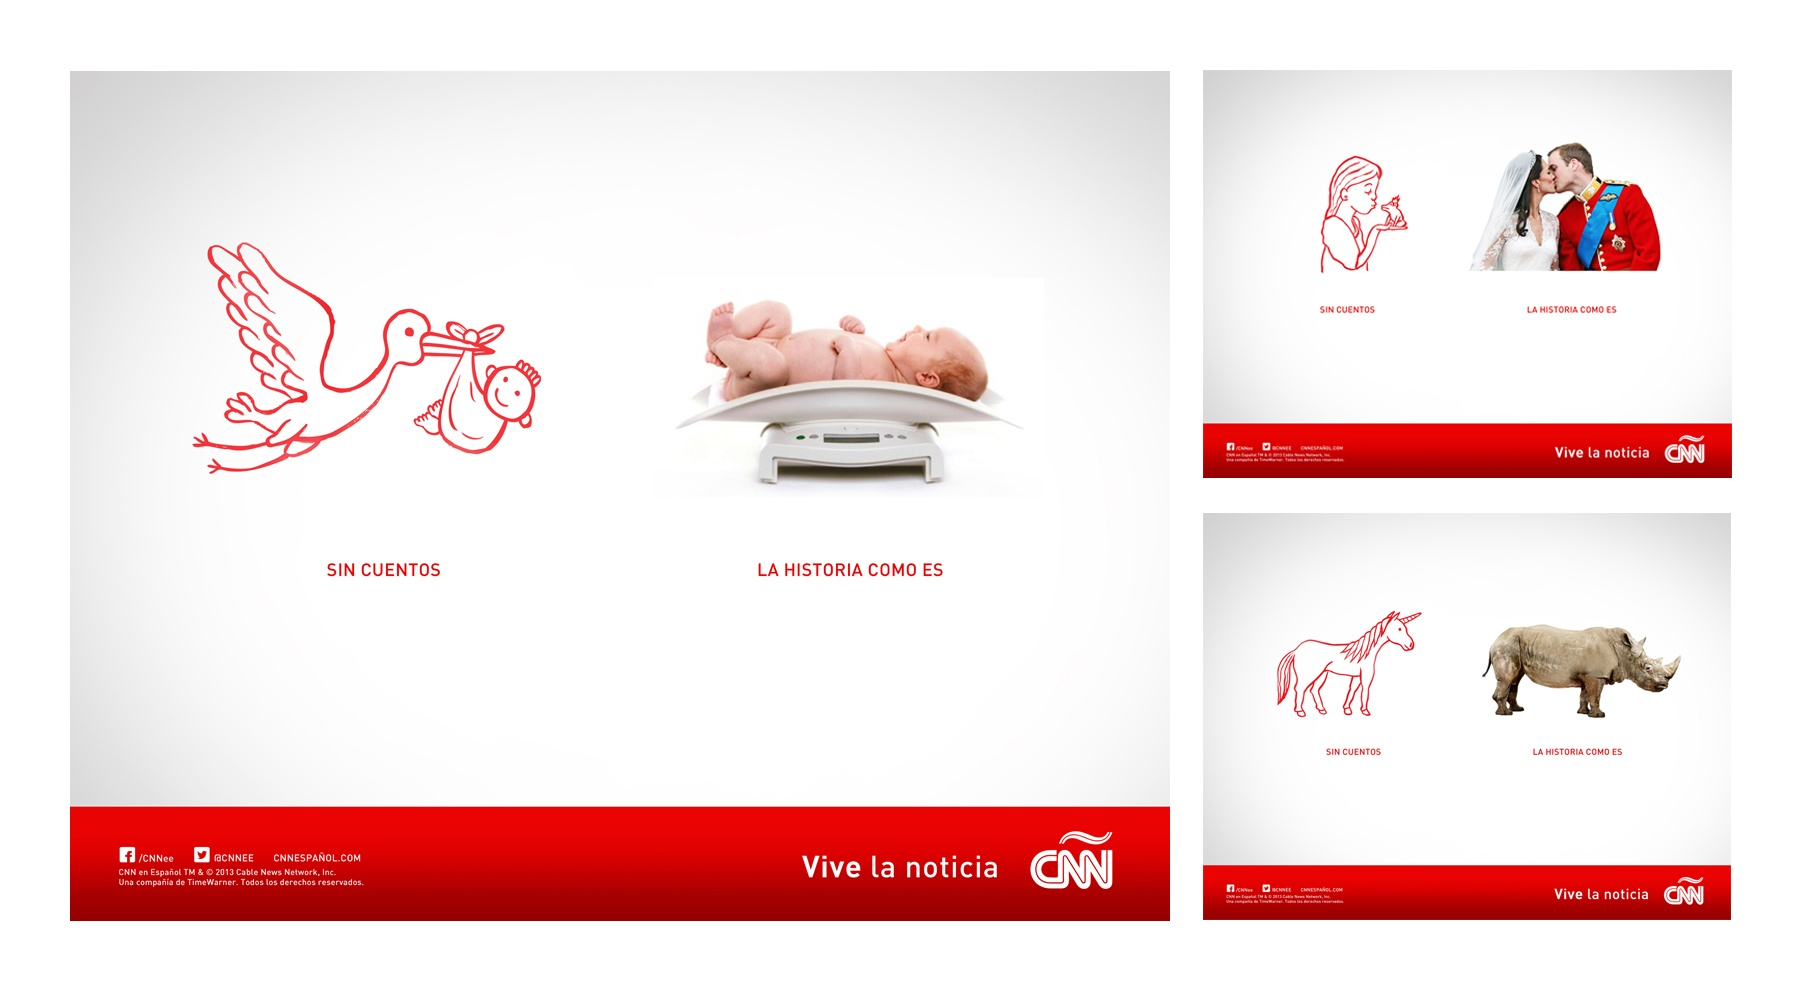 CNN Institutional Campaign SIN CUENTOS